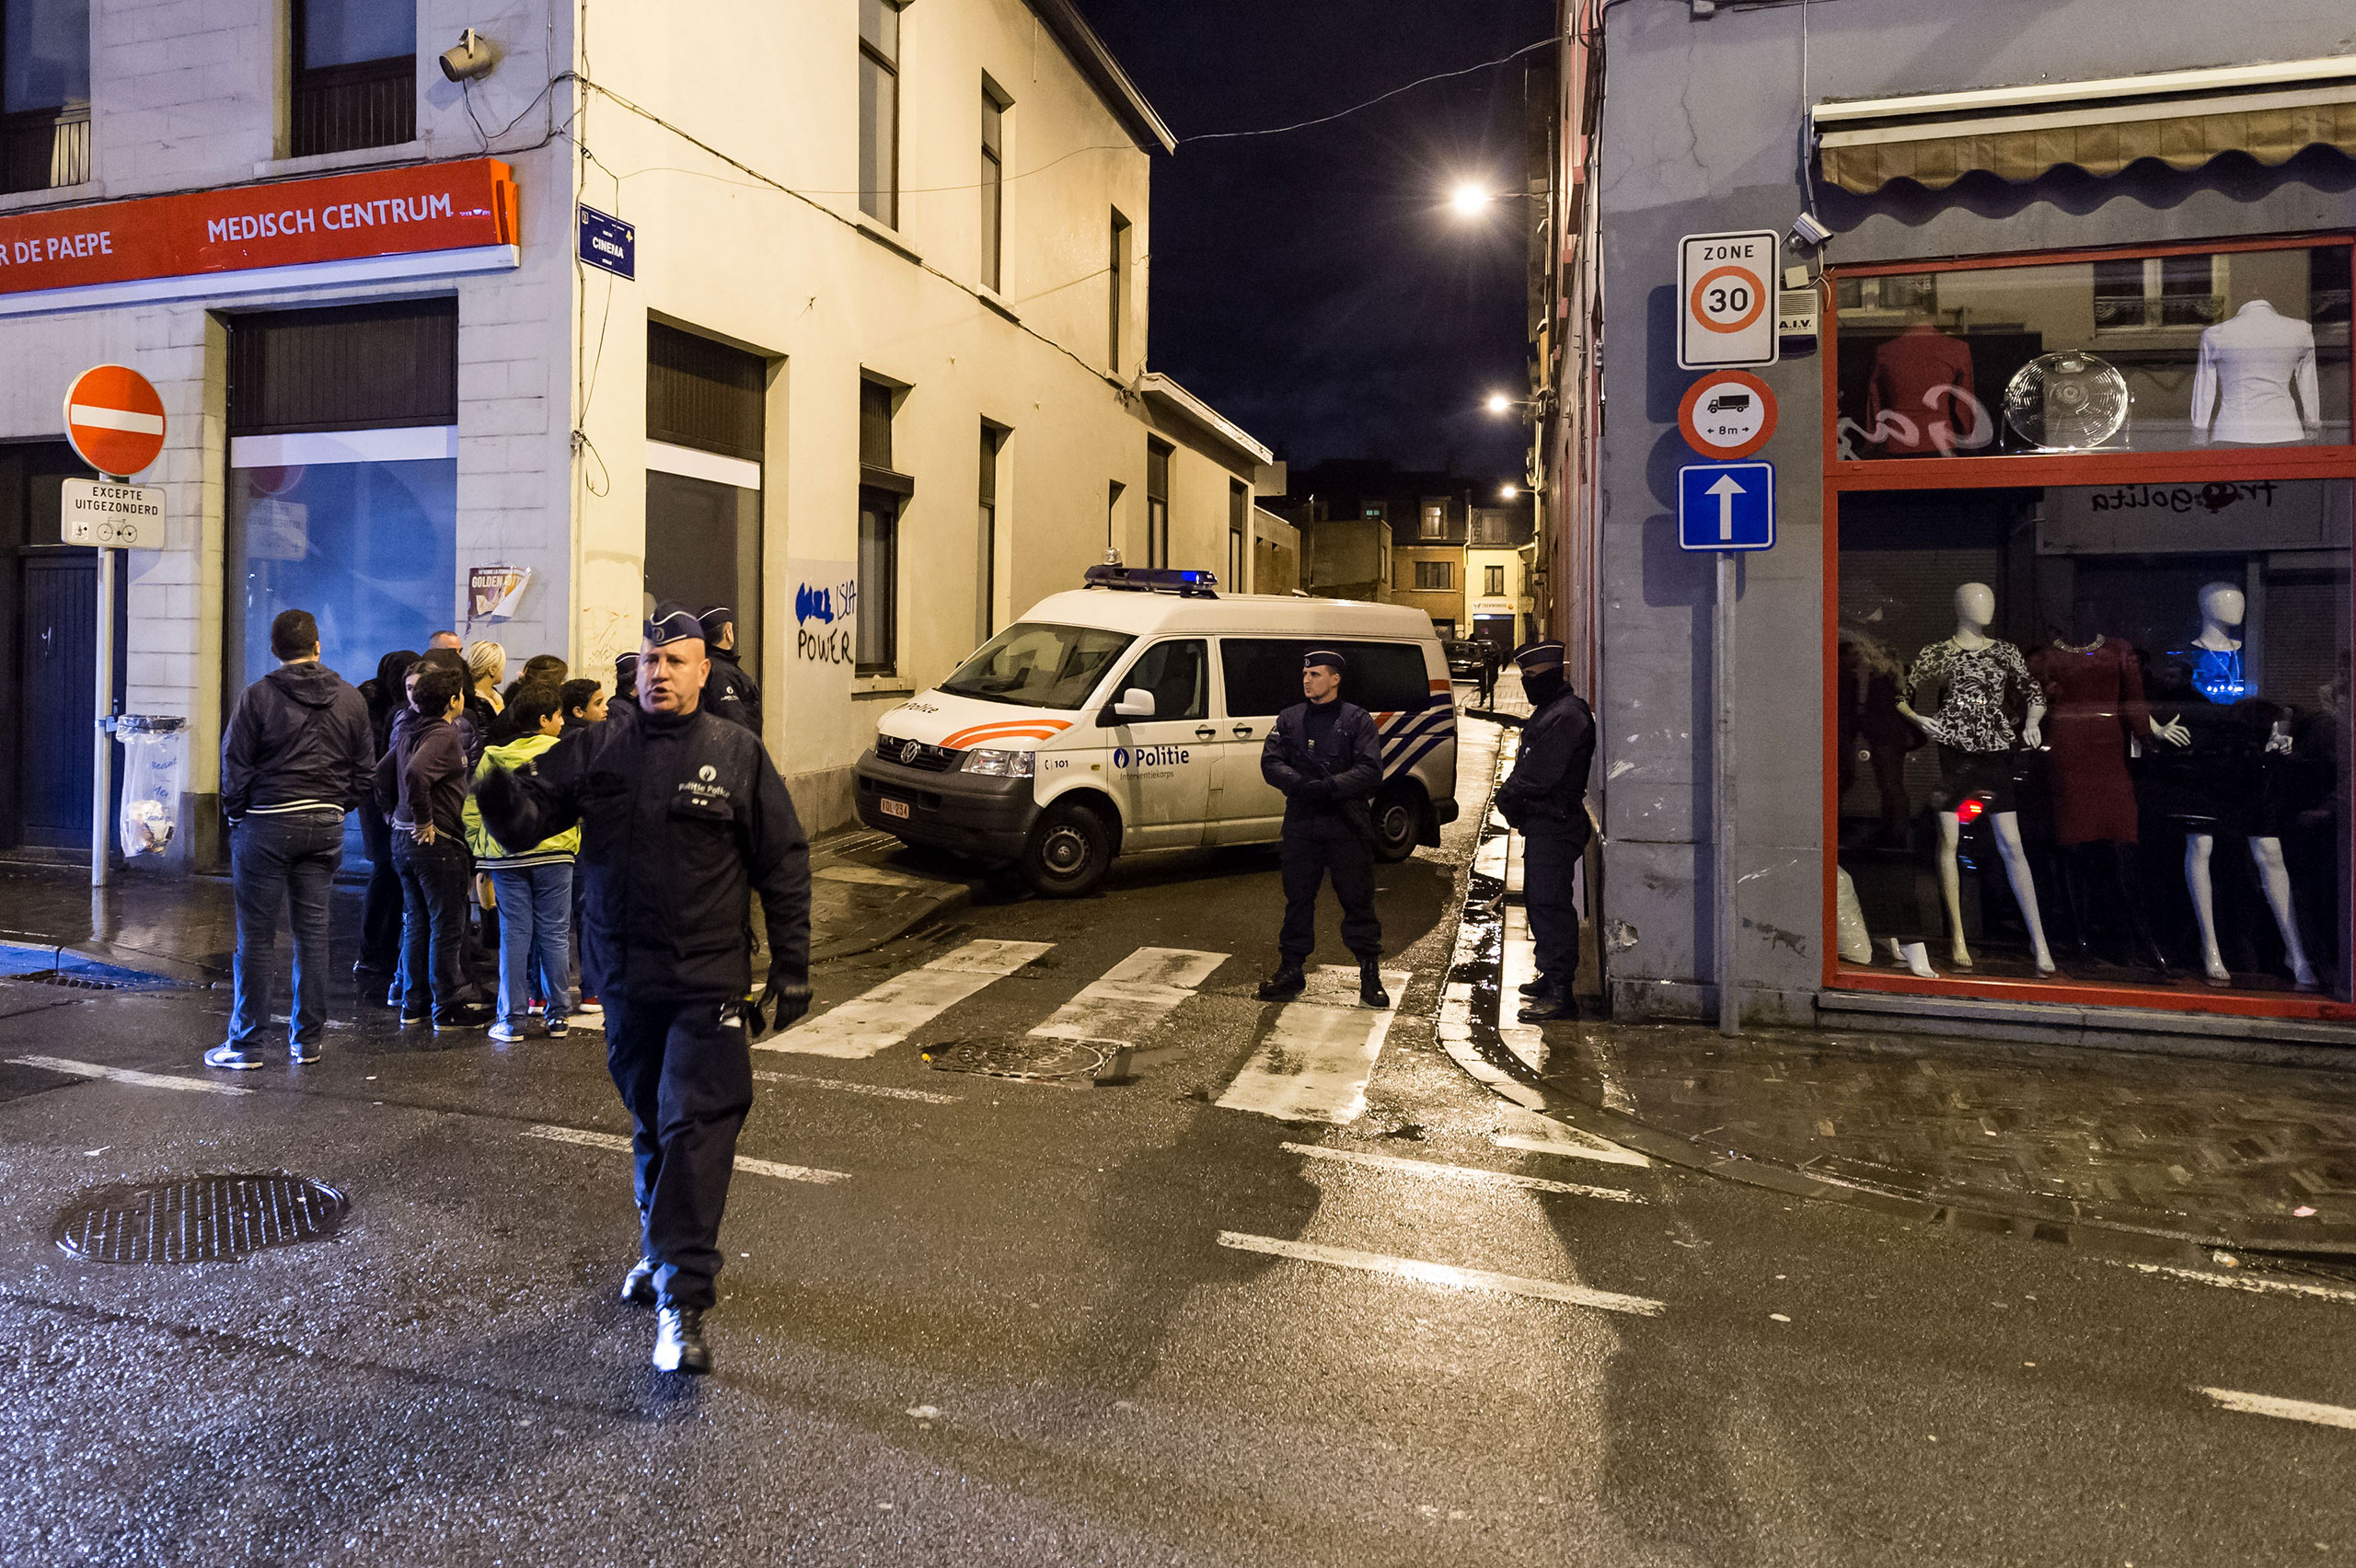 Police guard a street while special intervention forces search a house in the Molenbeek neighborhood of Brussels, Belgium, Nov. 17, 2015.